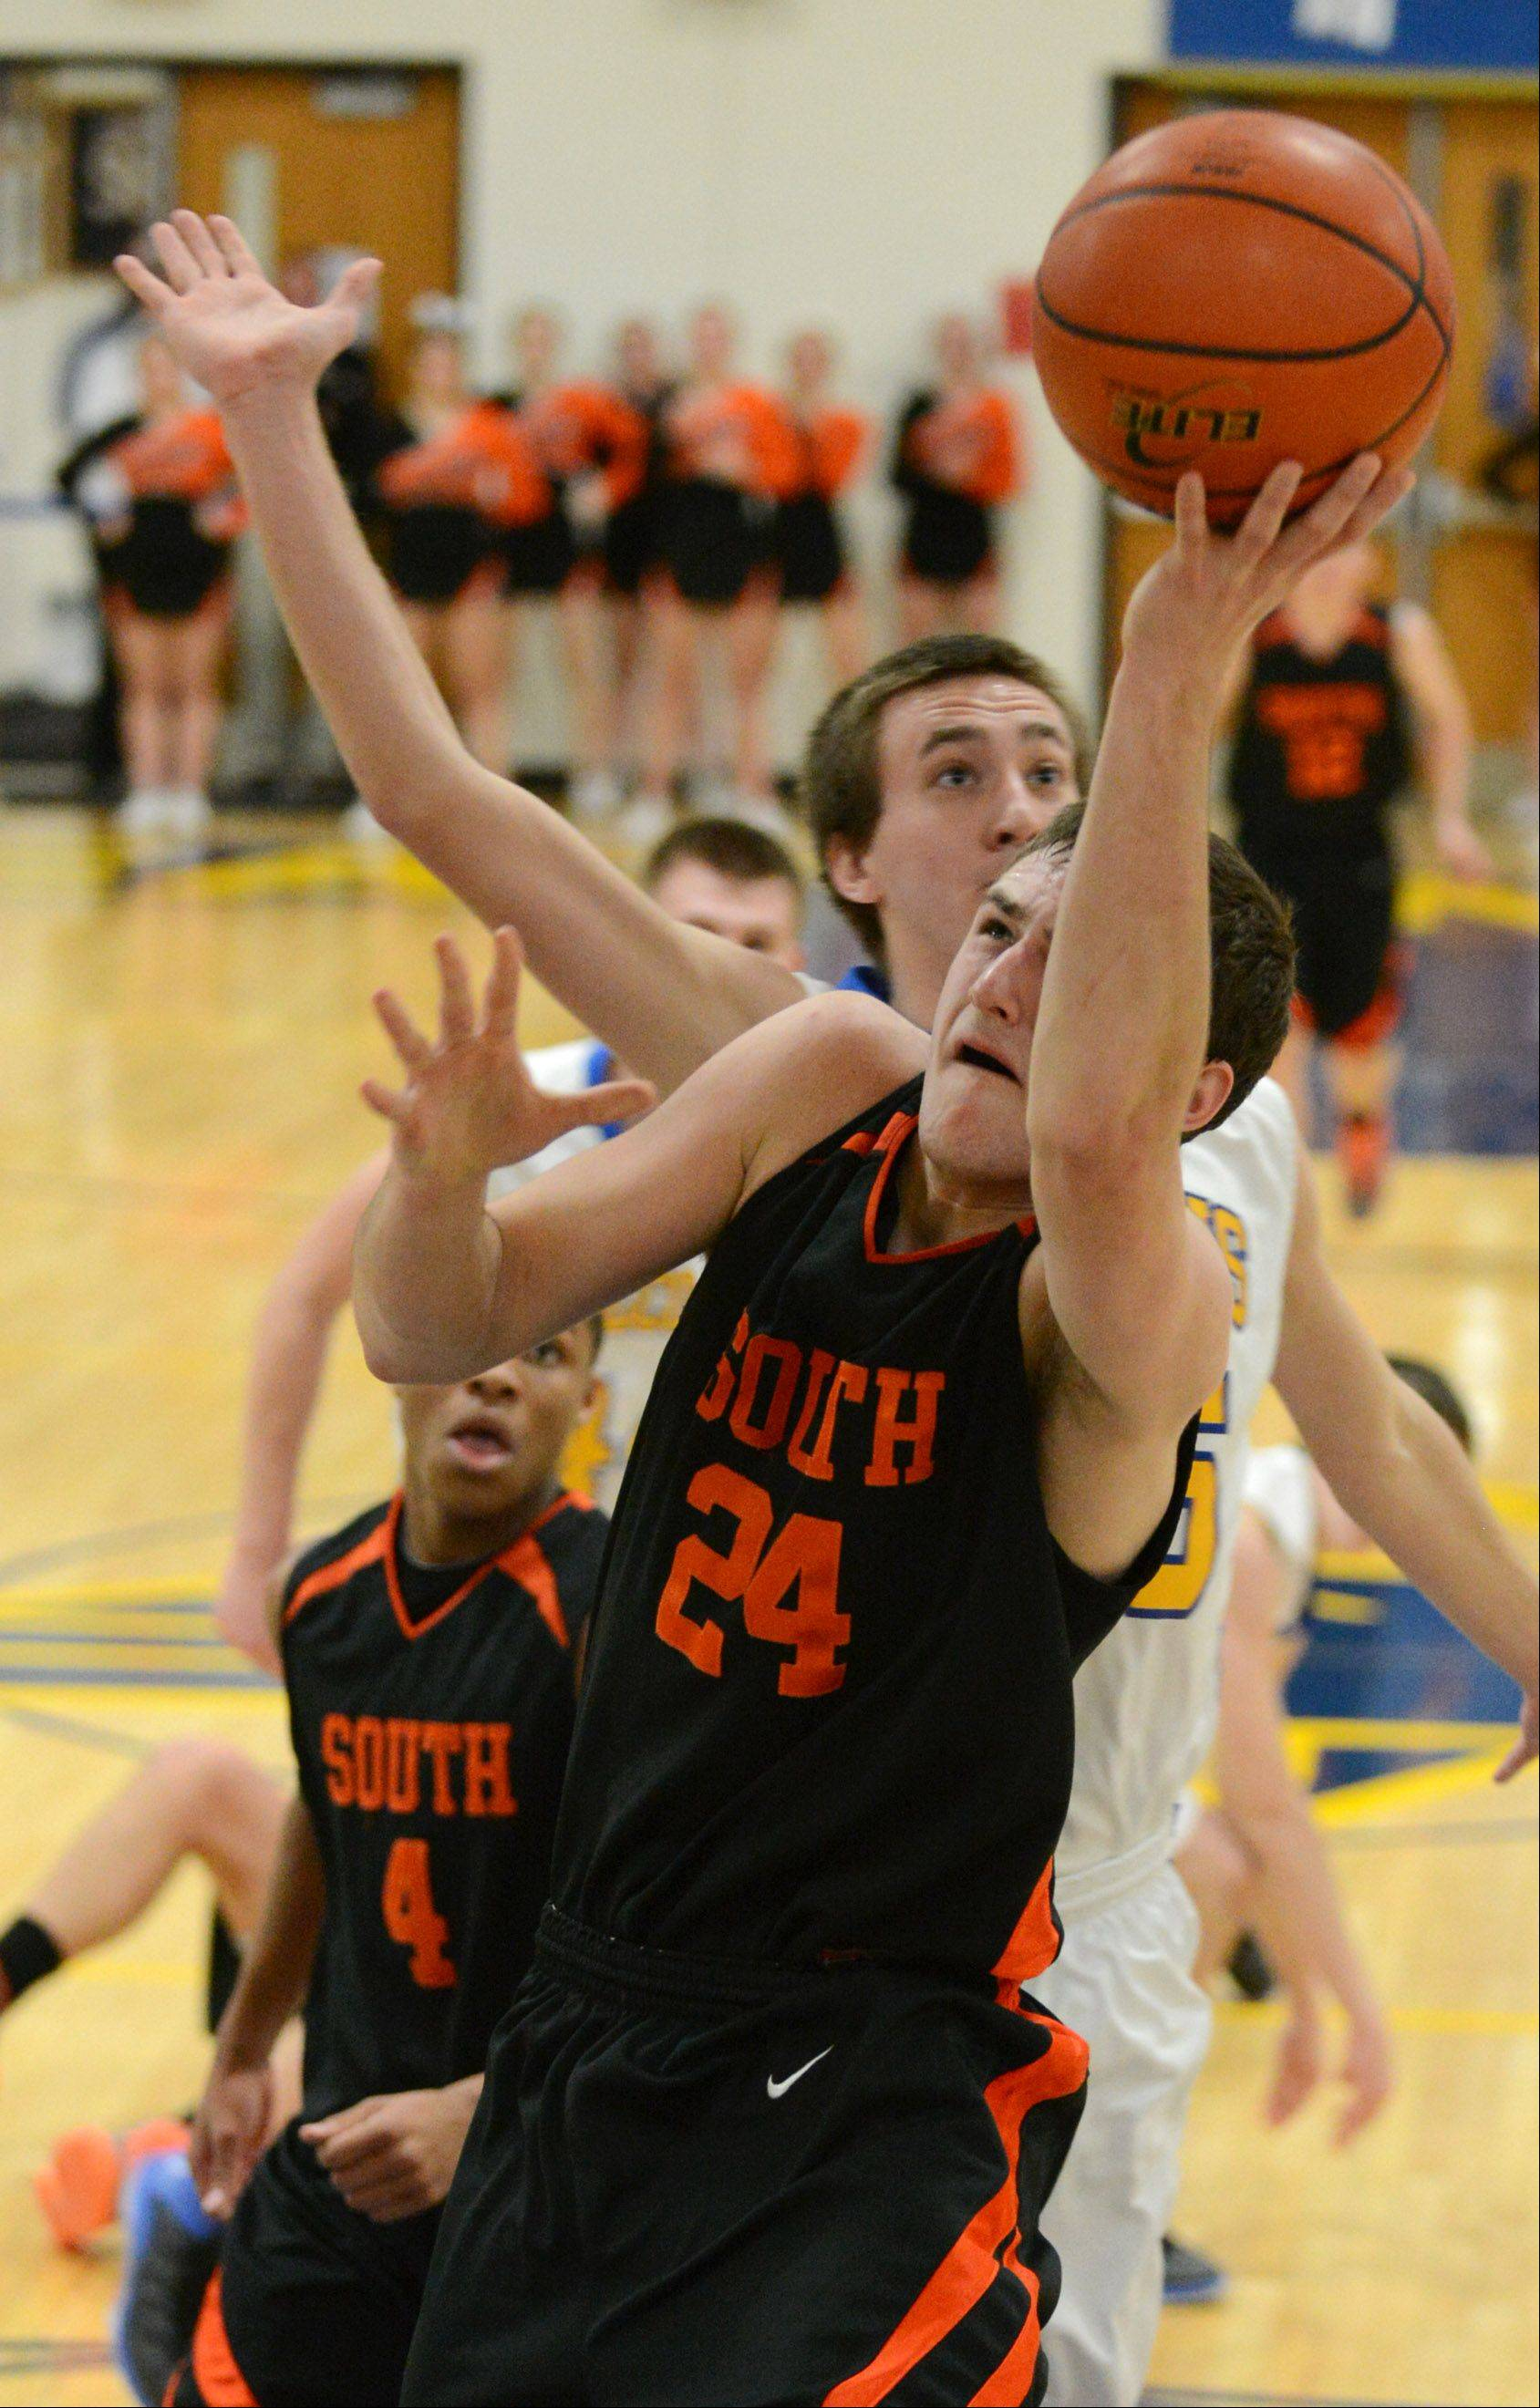 Wheaton Warrenville South's Matt Kienzle (24) takes a shot during Friday's game at Wheaton North.